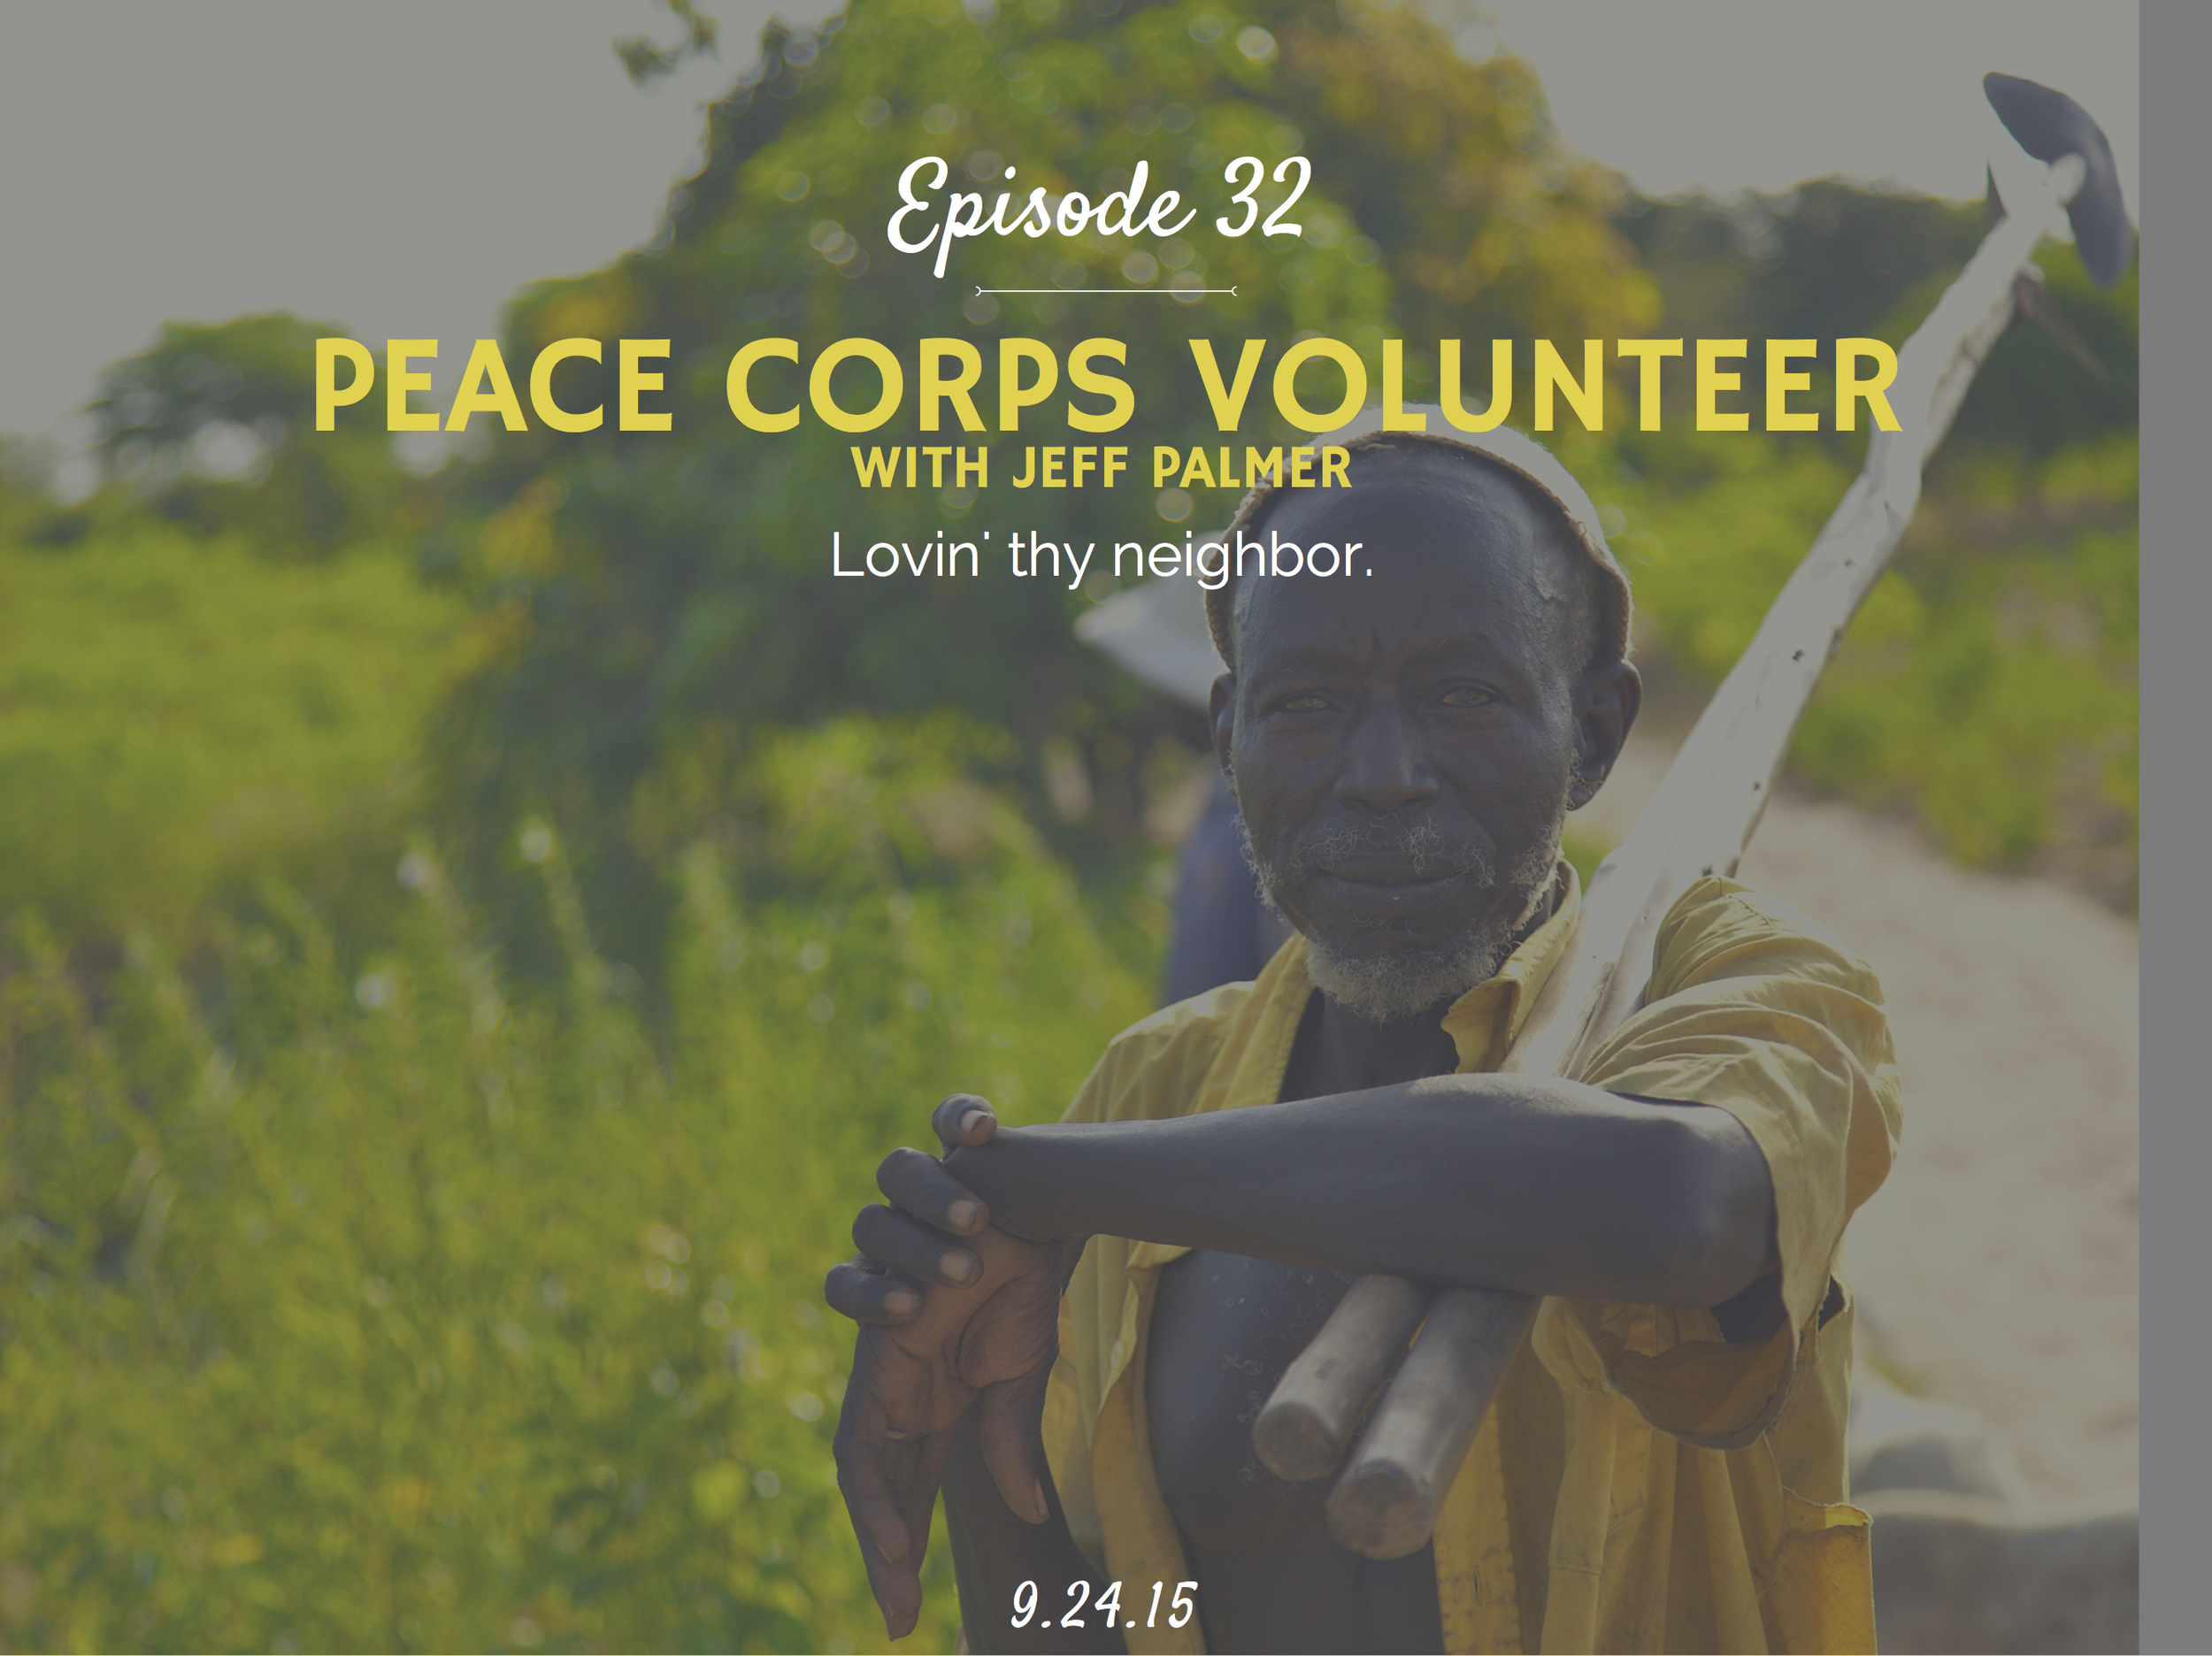 What is it like to be in the peacecorps and advice to prepare interview with Jeff Palmer